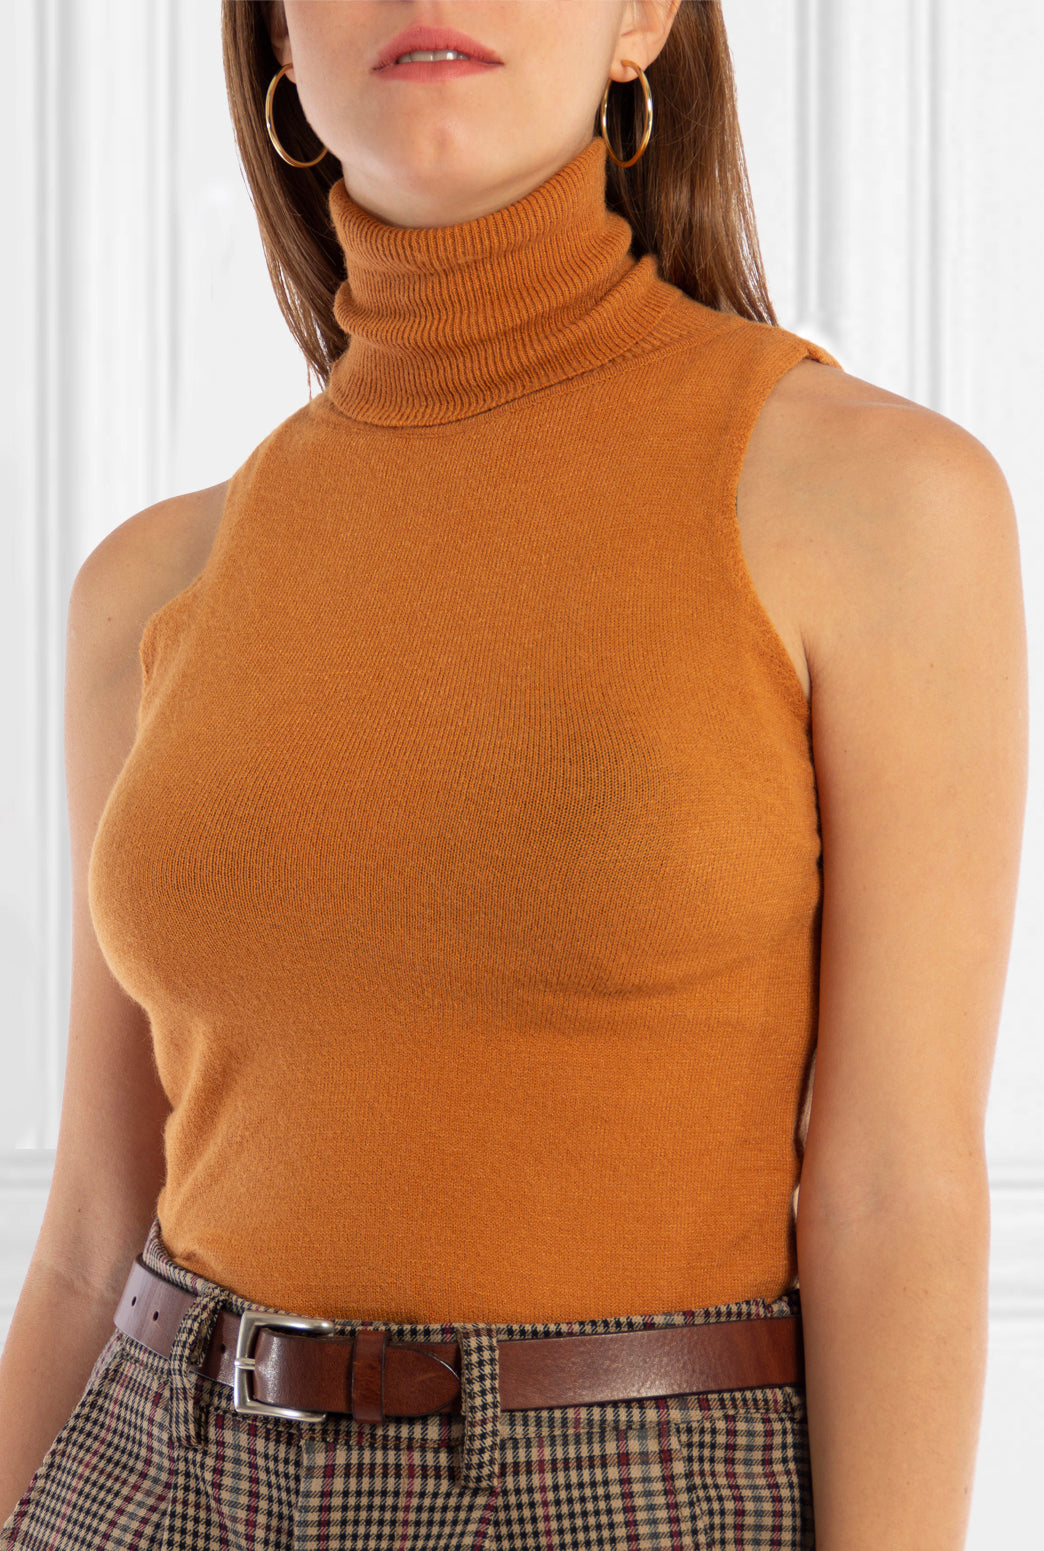 Mustard Sleeveless Turtleneck Top